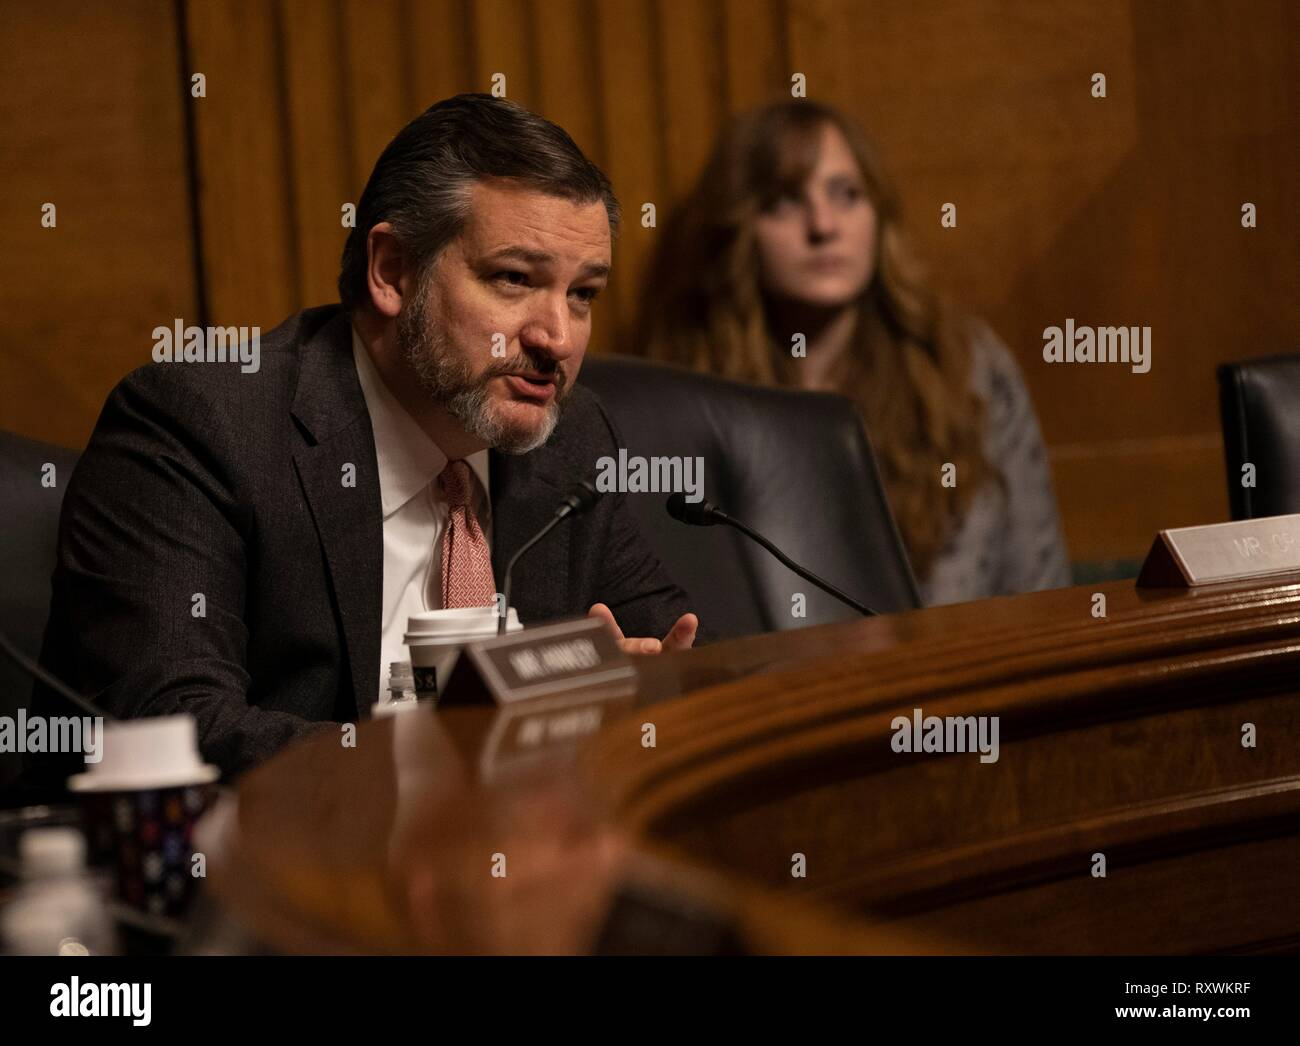 U.S. Senator Ted Cruz of Texas, questions Customs and Border Protection Commissioner Kevin McAleenan during a hearing at the Senate Judiciary Committee on Capitol Hill March 5, 2019 in Washington, D.C. The hearing was on the Oversight of Customs and Border Protection Response to the Smuggling of Persons at the Southern Border. - Stock Image